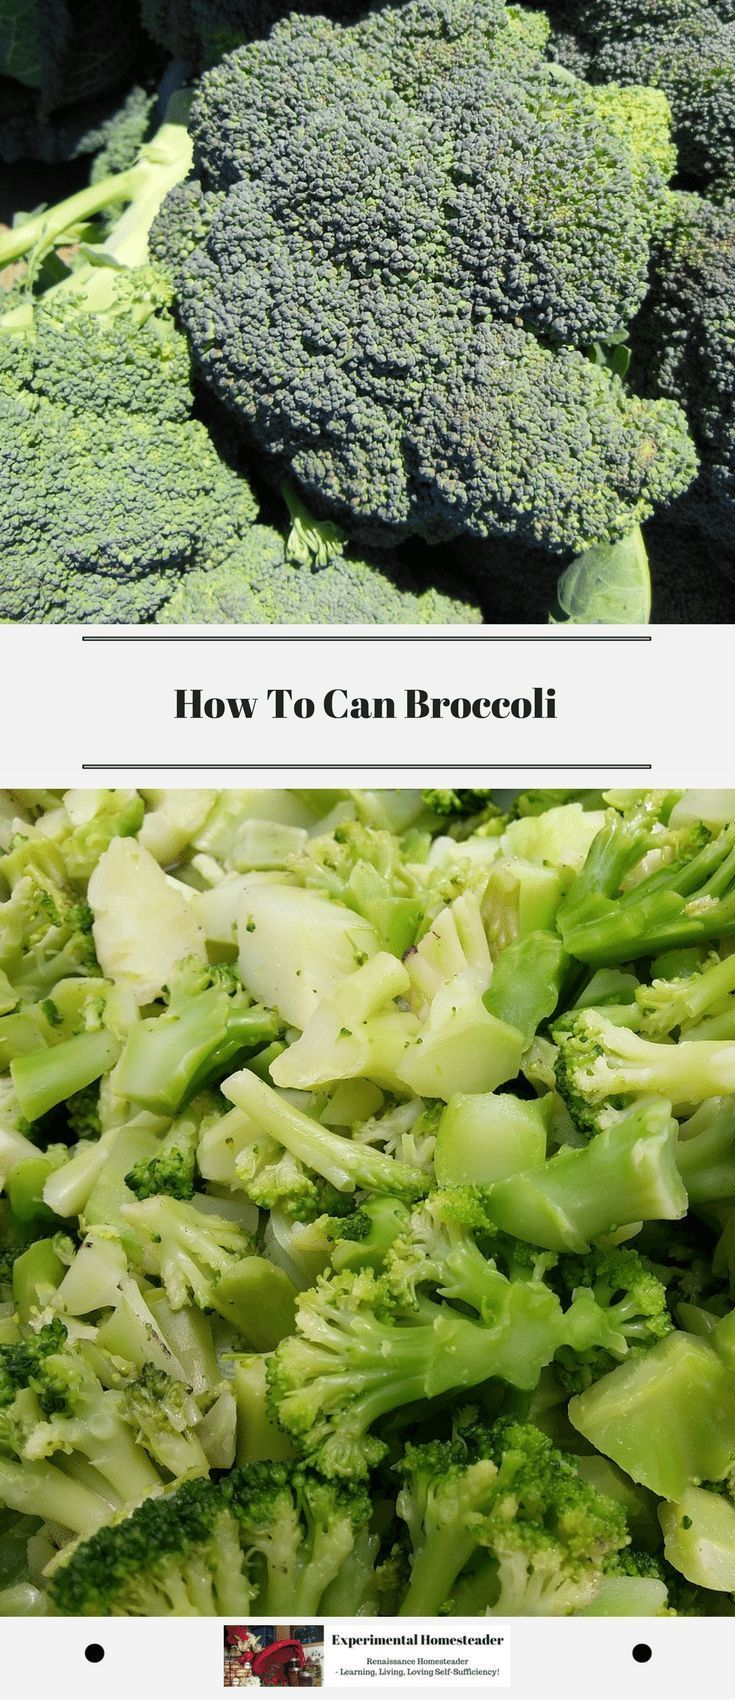 Looking for a recipe for canning broccoli? Here is one for pressure canning broccoli that is simple even for those just learning how to can. #canningbroccoli #pressurecanningbroccoli #canningvegetables #howtocan